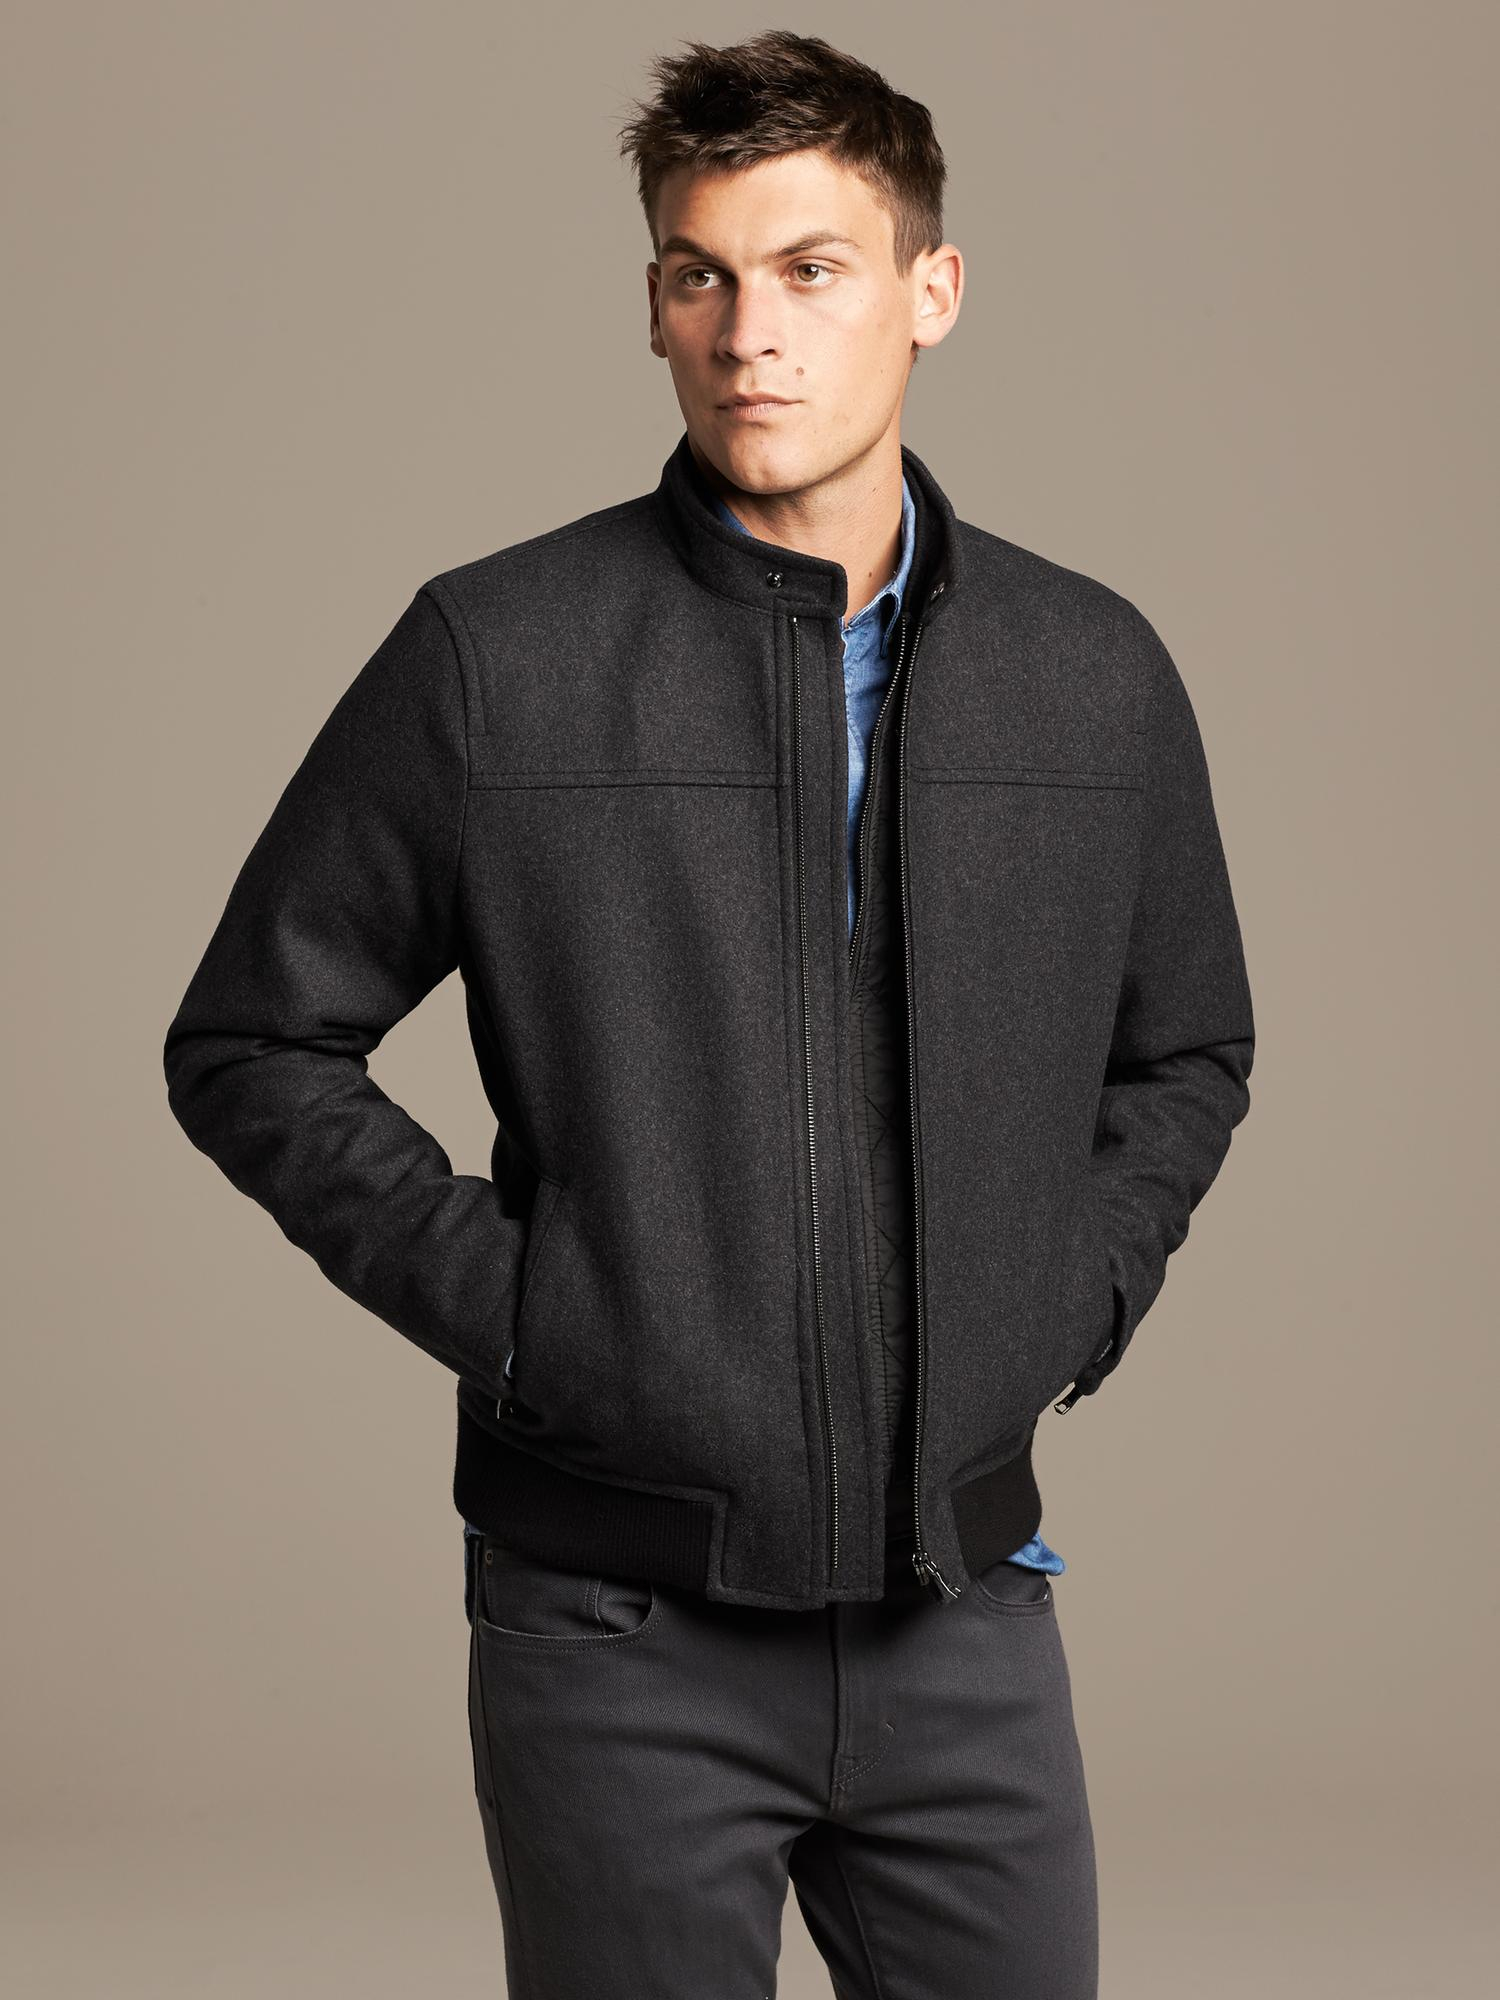 Banana Republic Charcoal Wool Zip Jacket In Gray For Men